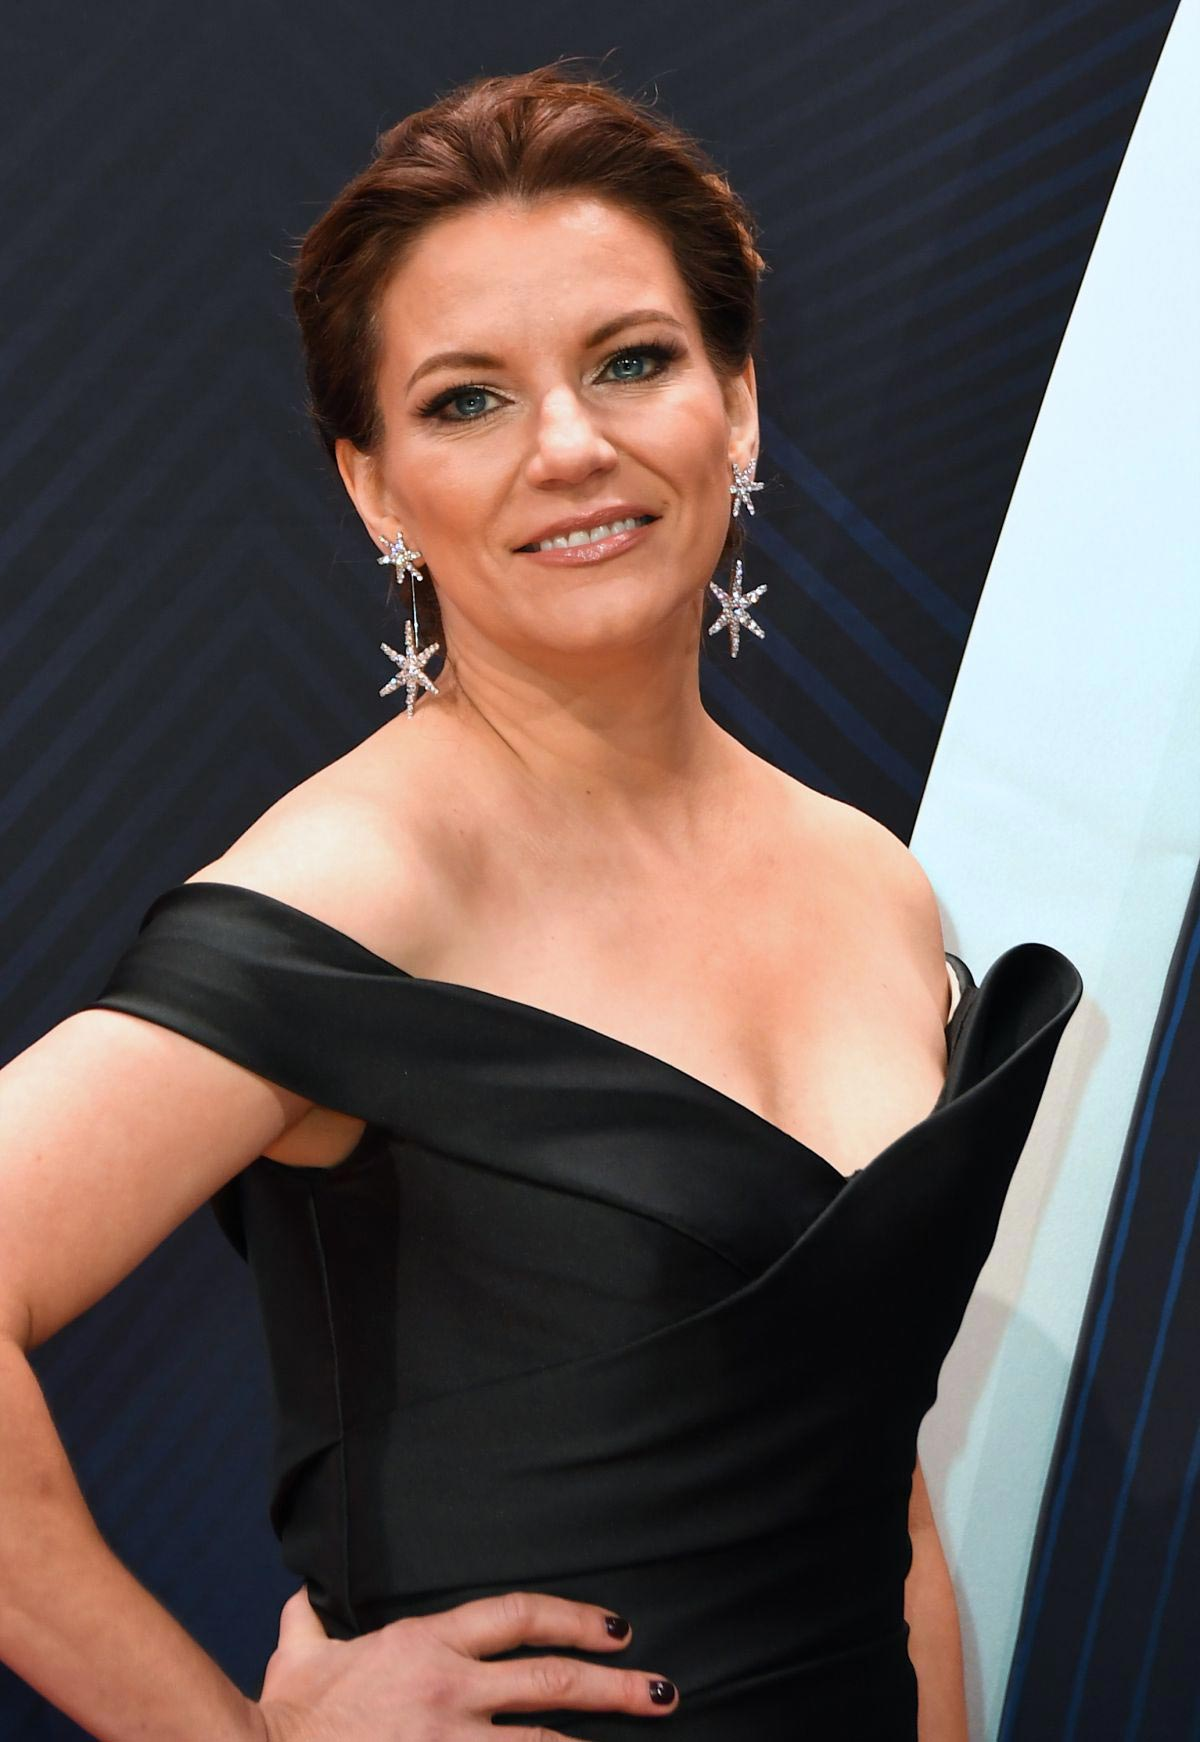 Martina McBride at 2018 CMA Awards in Nashville 2018/11/14 1